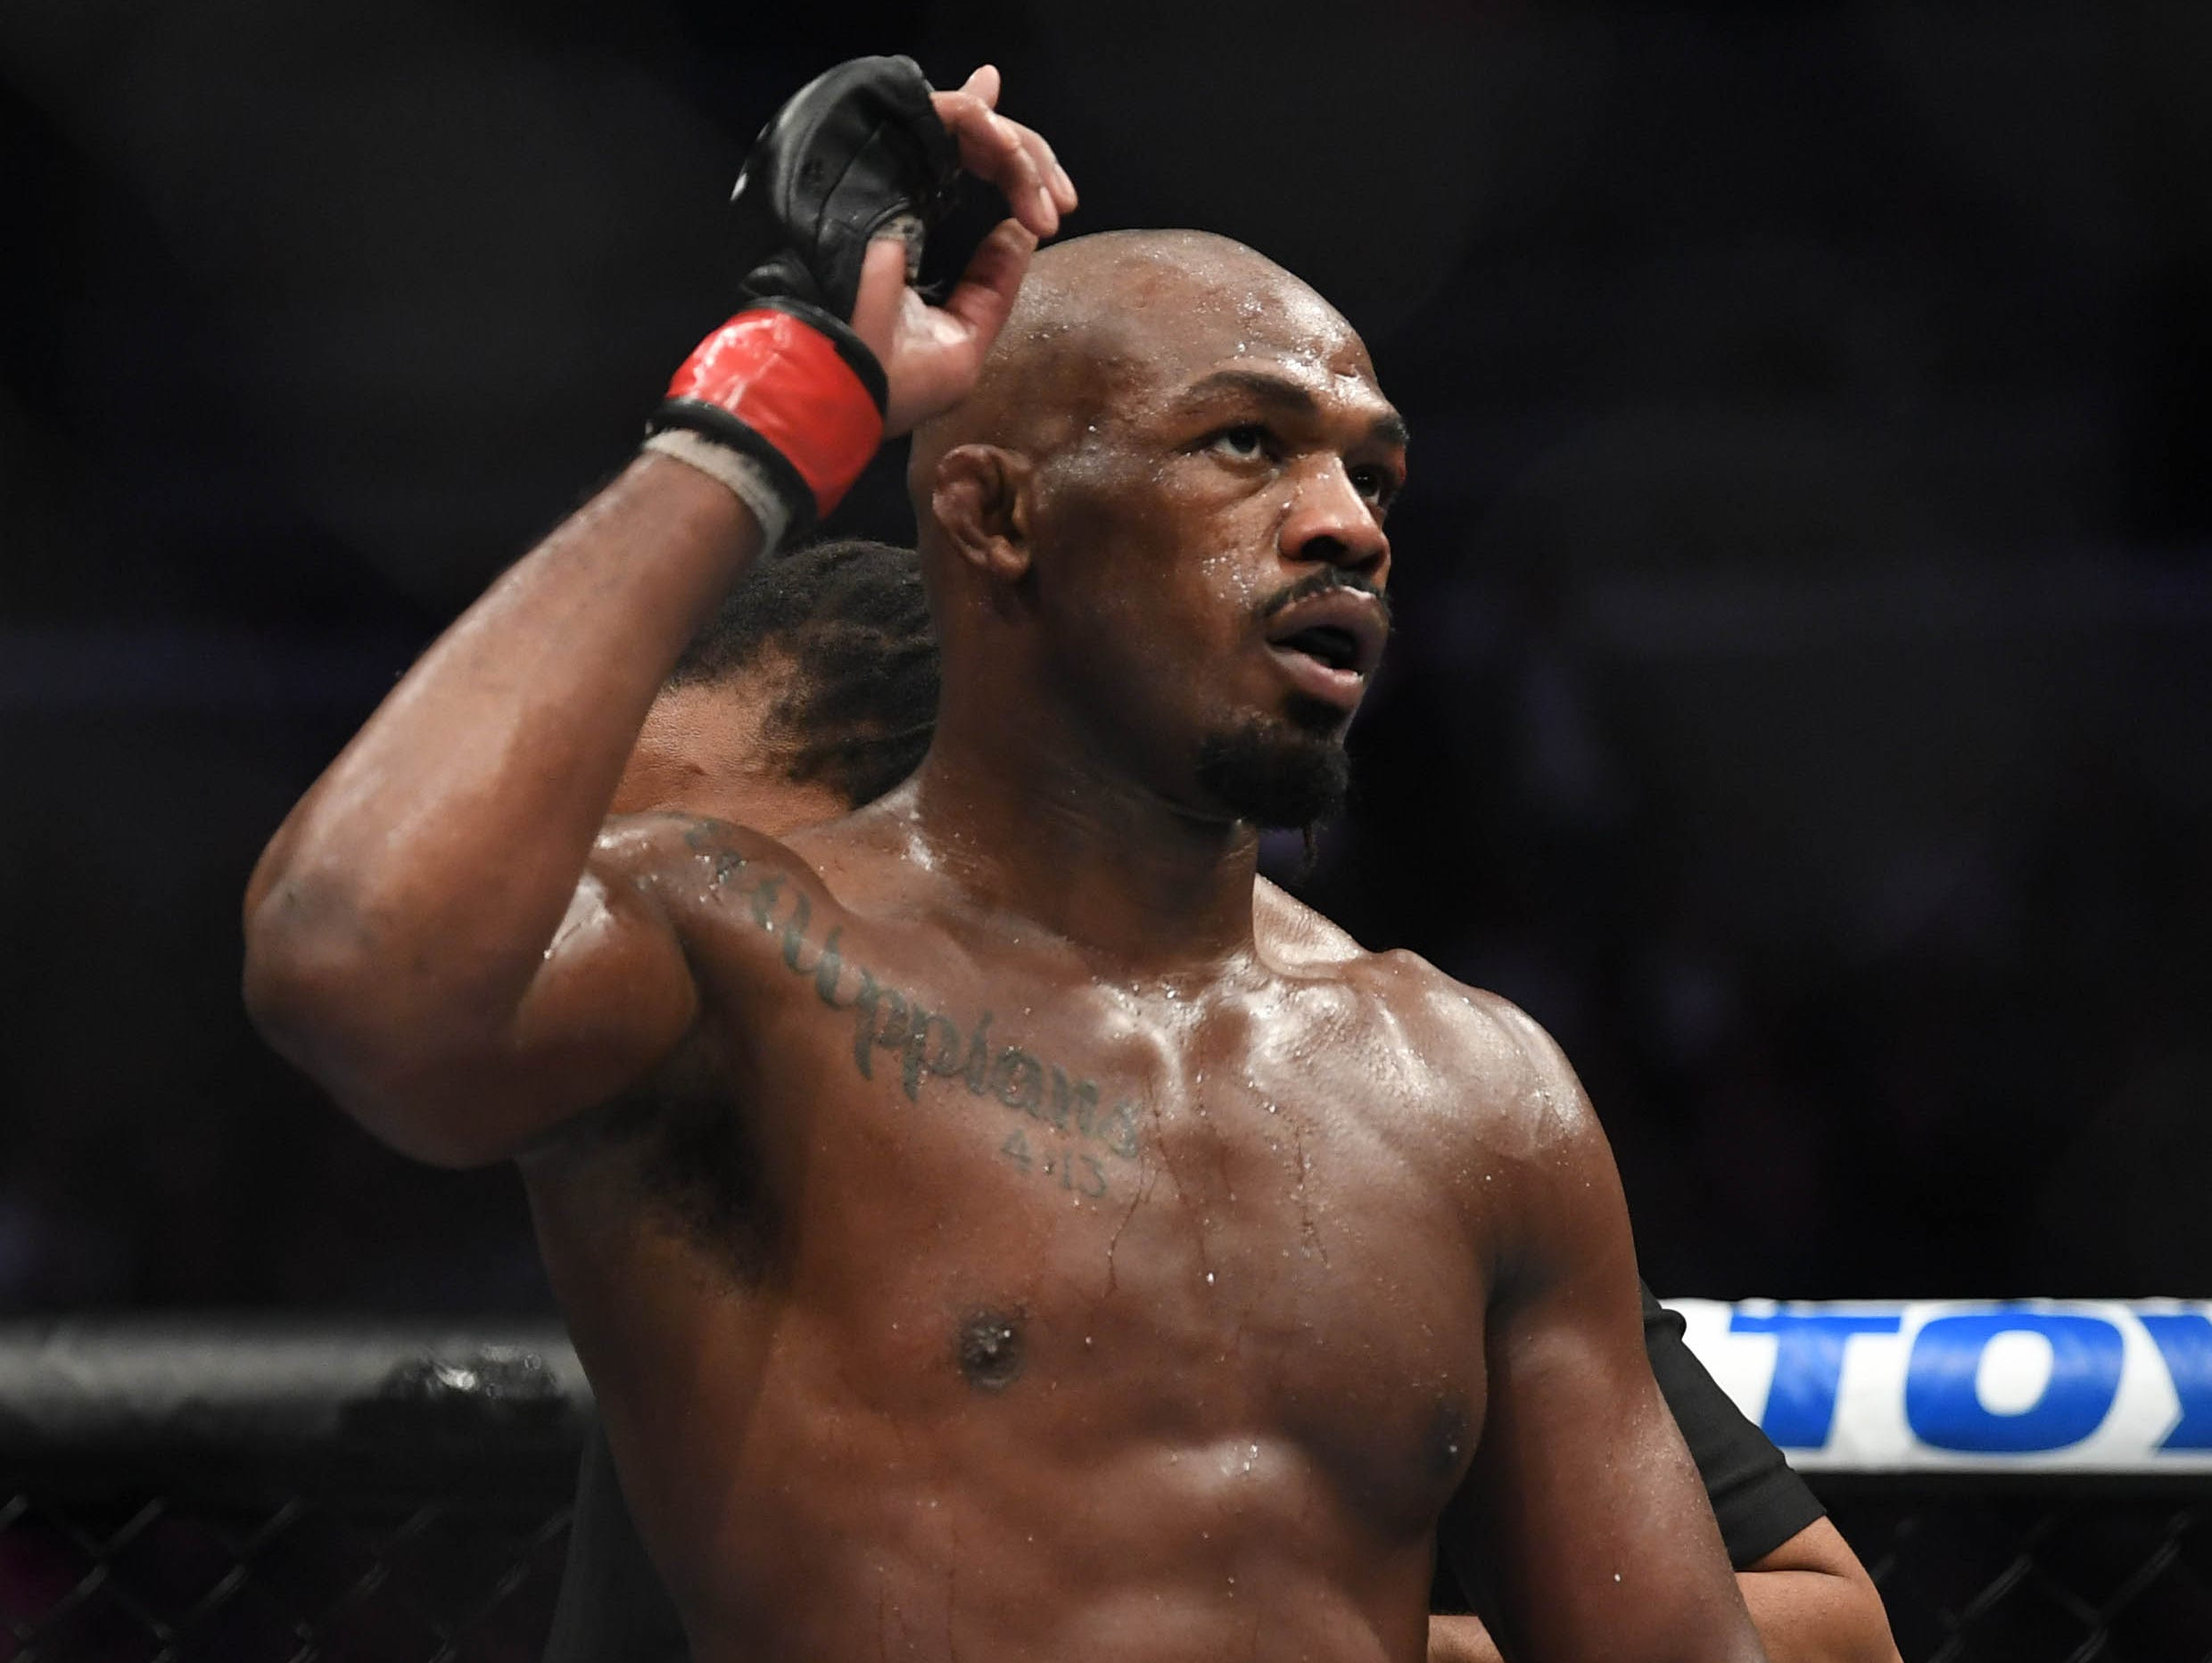 Mar 2, 2019; Las Vegas, NV, USA; Jon Jones (red gloves) defeats Anthony Smith (blue gloves) during UFC 235 at T-Mobile Arena. Mandatory Credit: Stephen R. Sylvanie-USA TODAY Sports